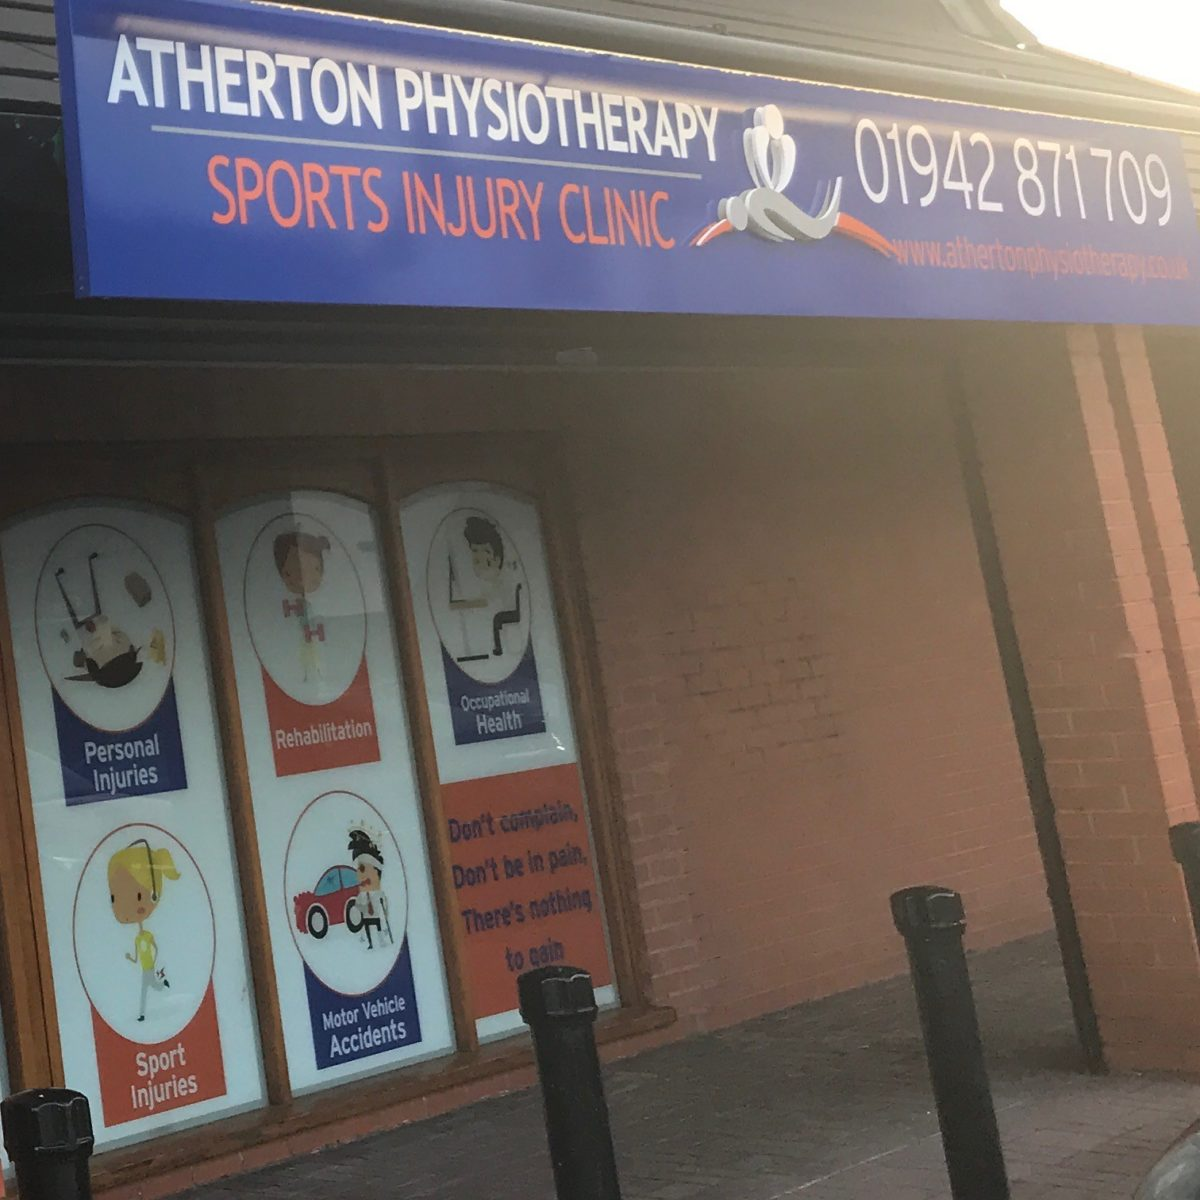 Atherton Physiotherapy and Sports Injury Clinic Ltd